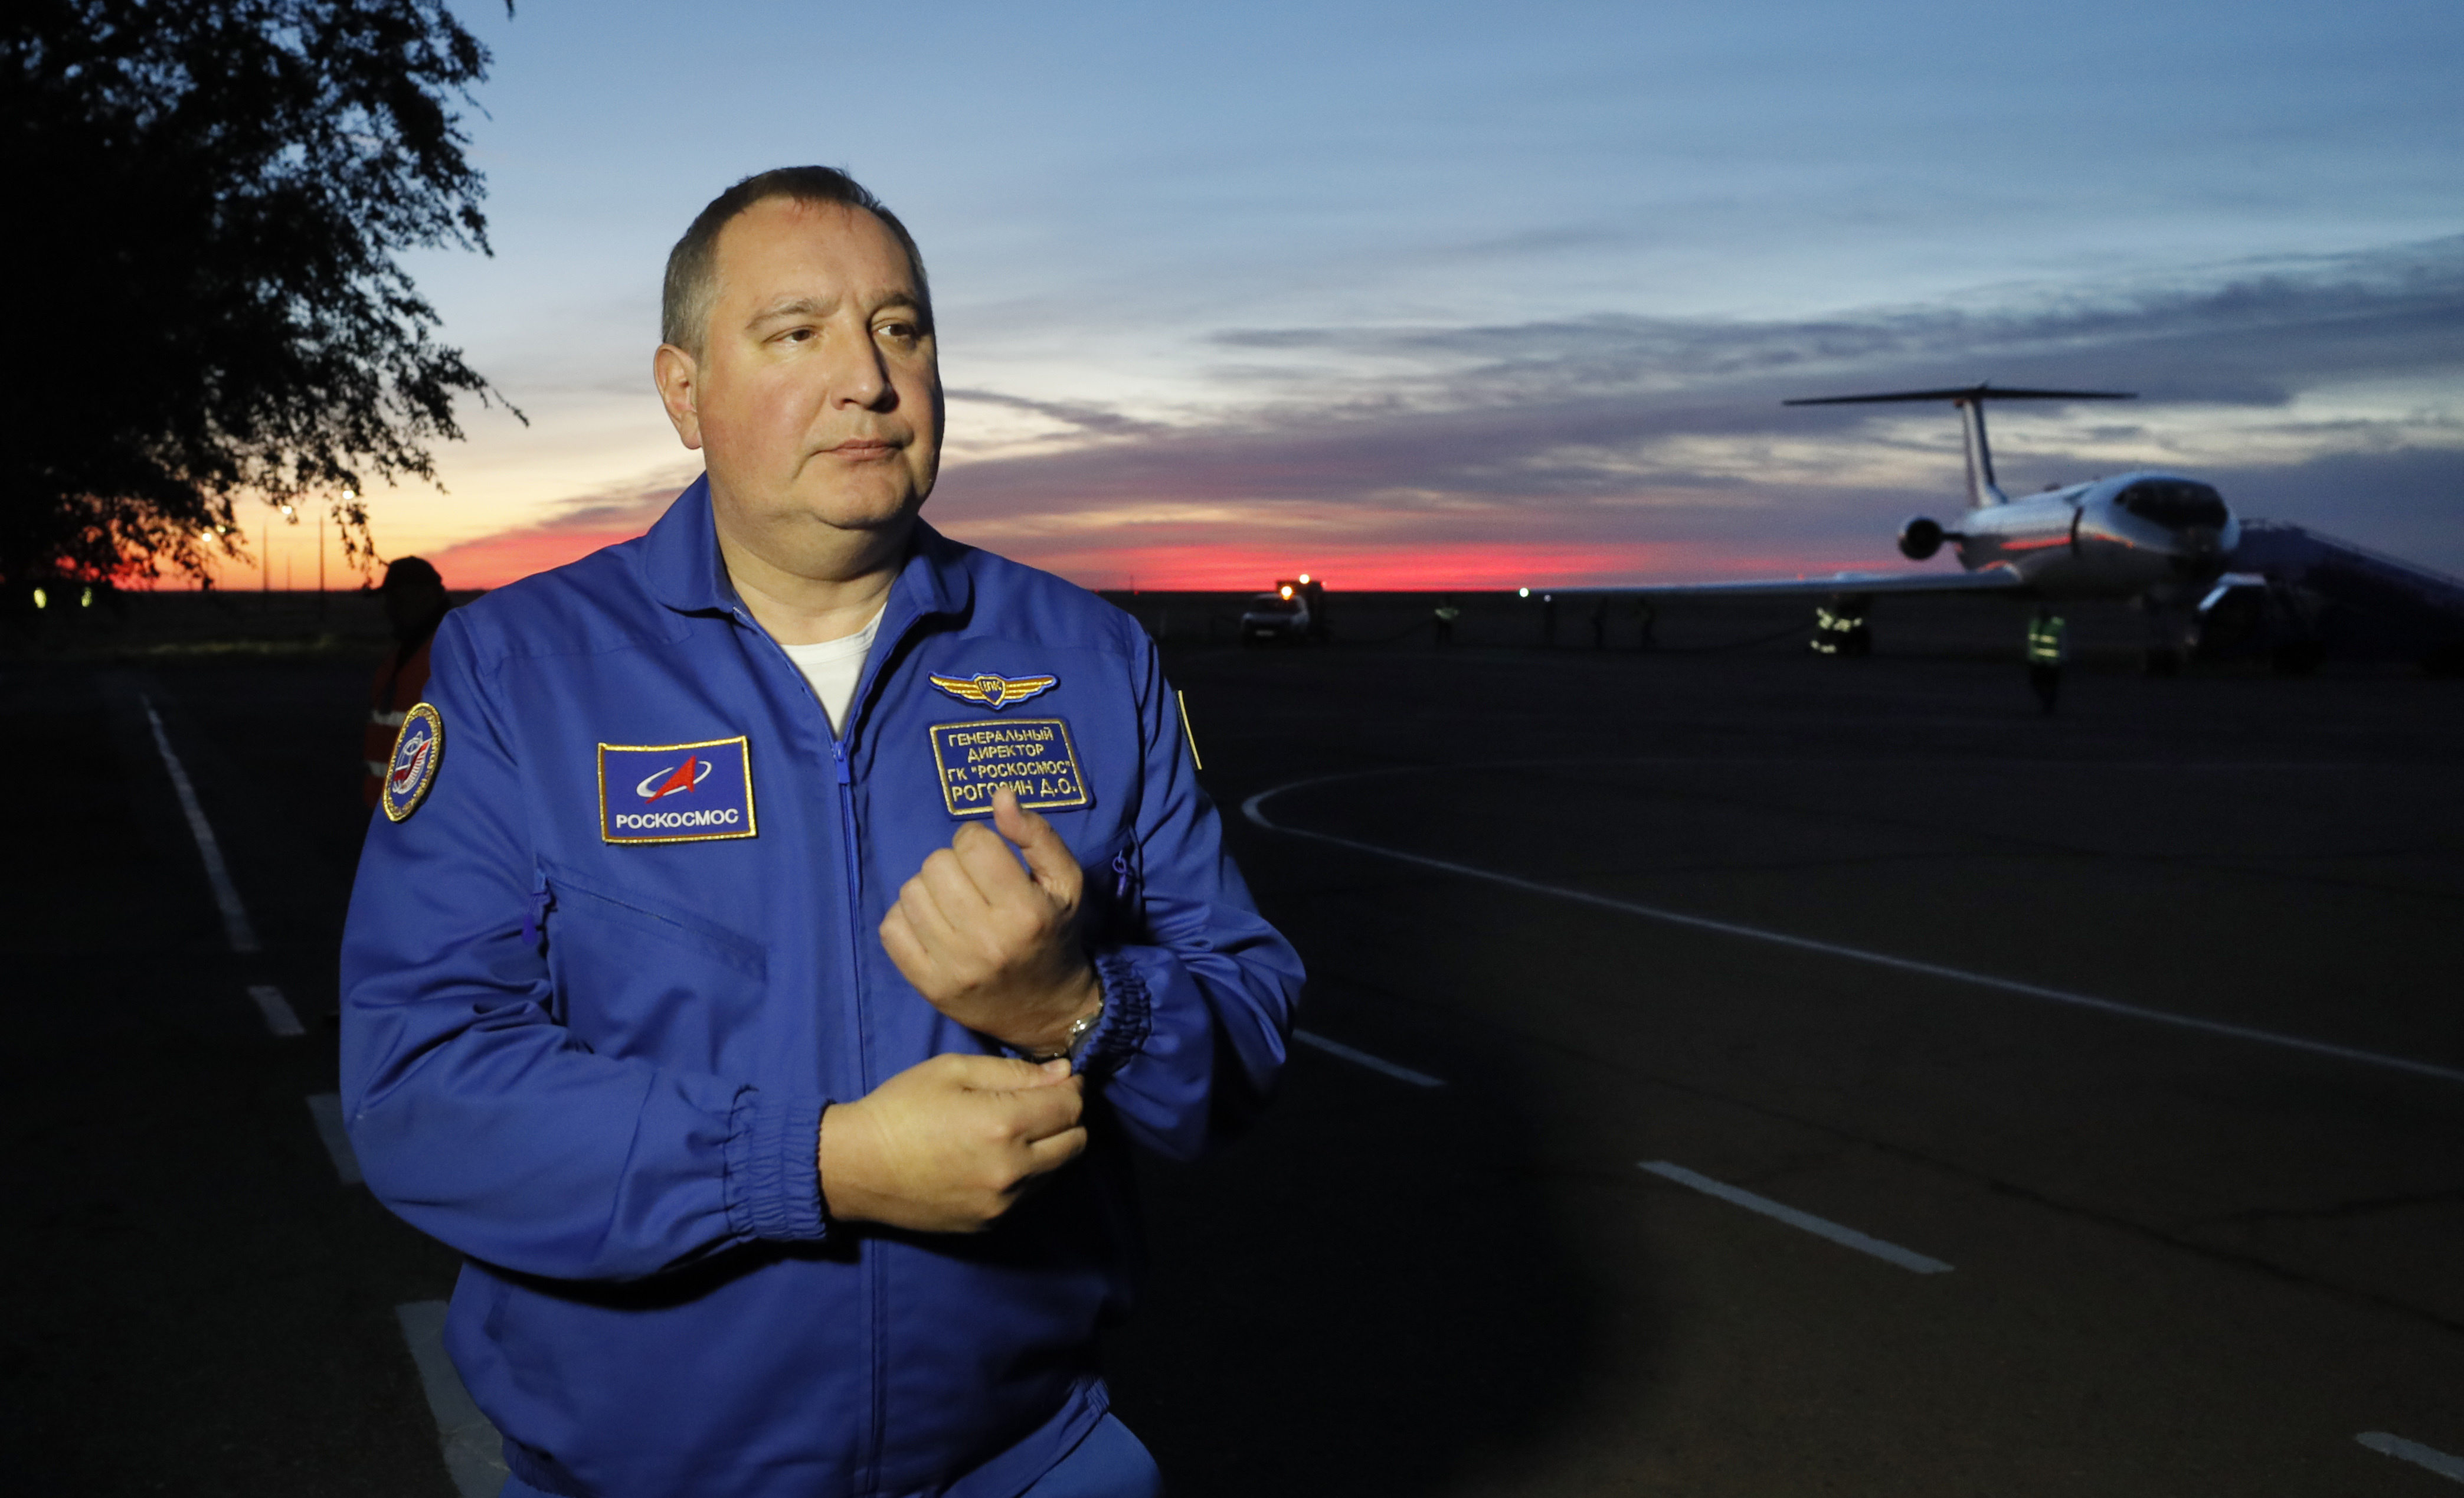 Russian police launch criminal probe over 'negative' coverage of Putin's space chief: Report